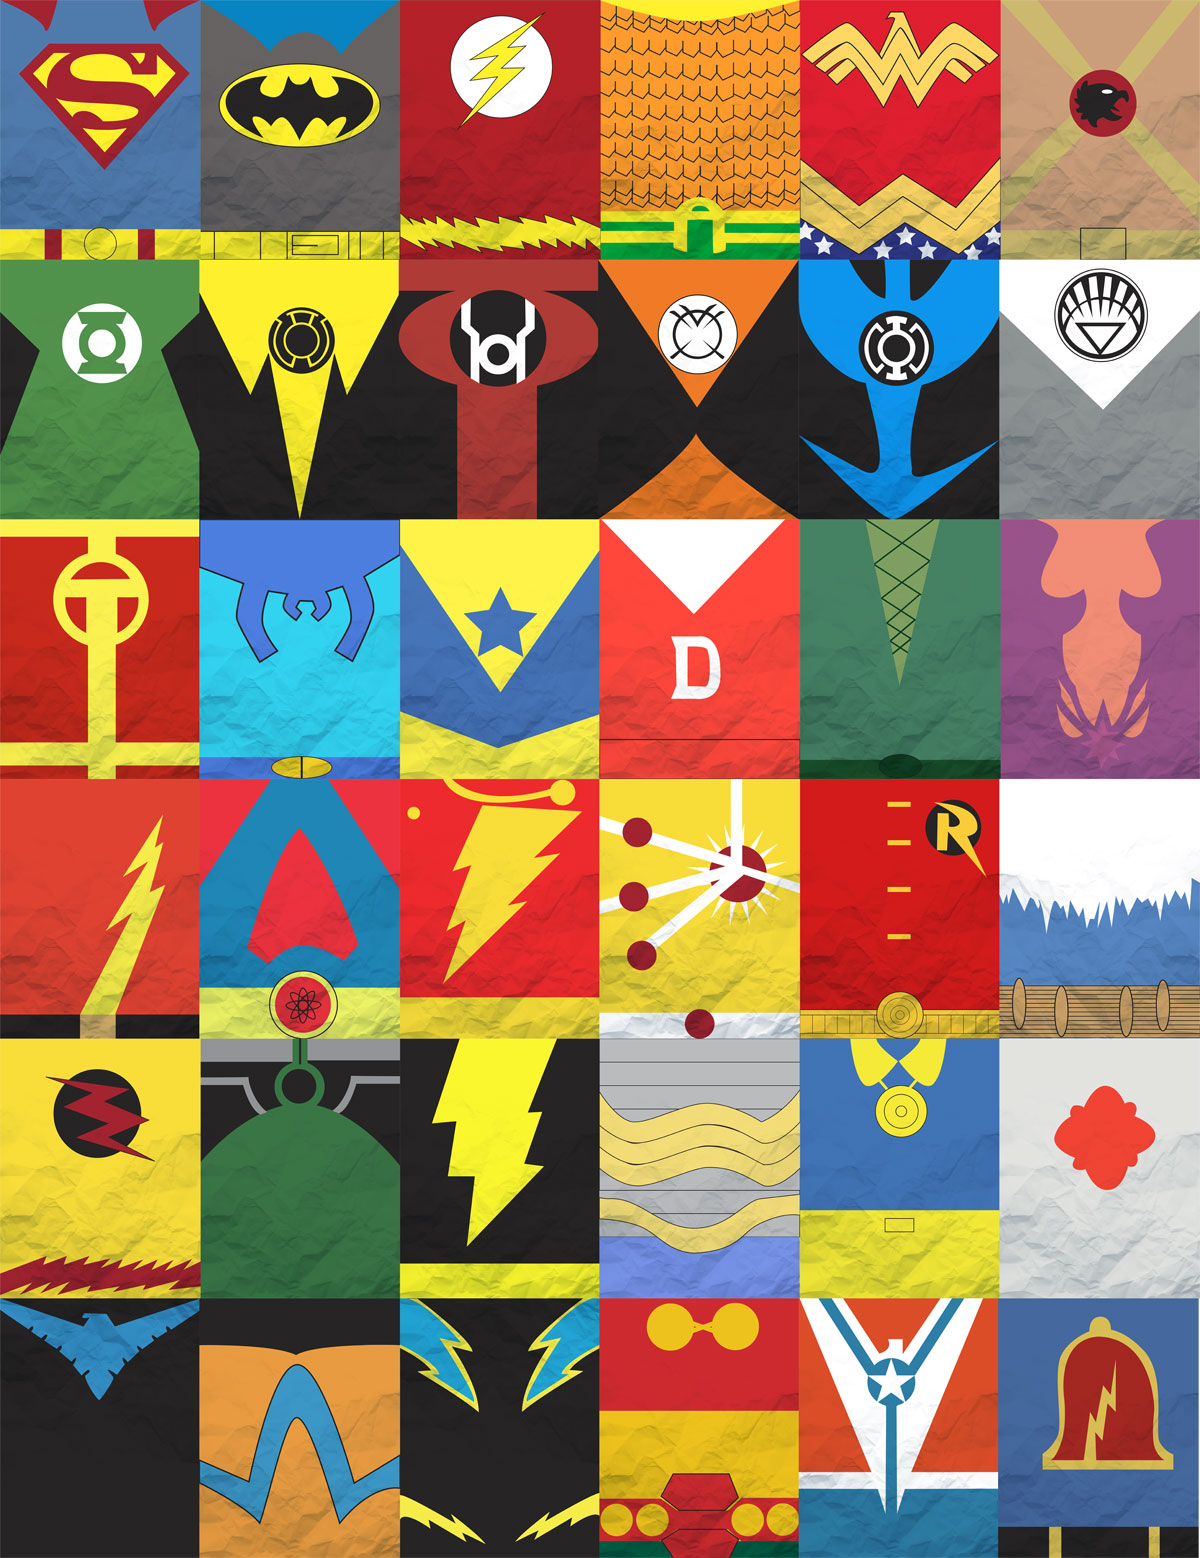 DC Comics Minimalist Poster by Dustin Koetsch